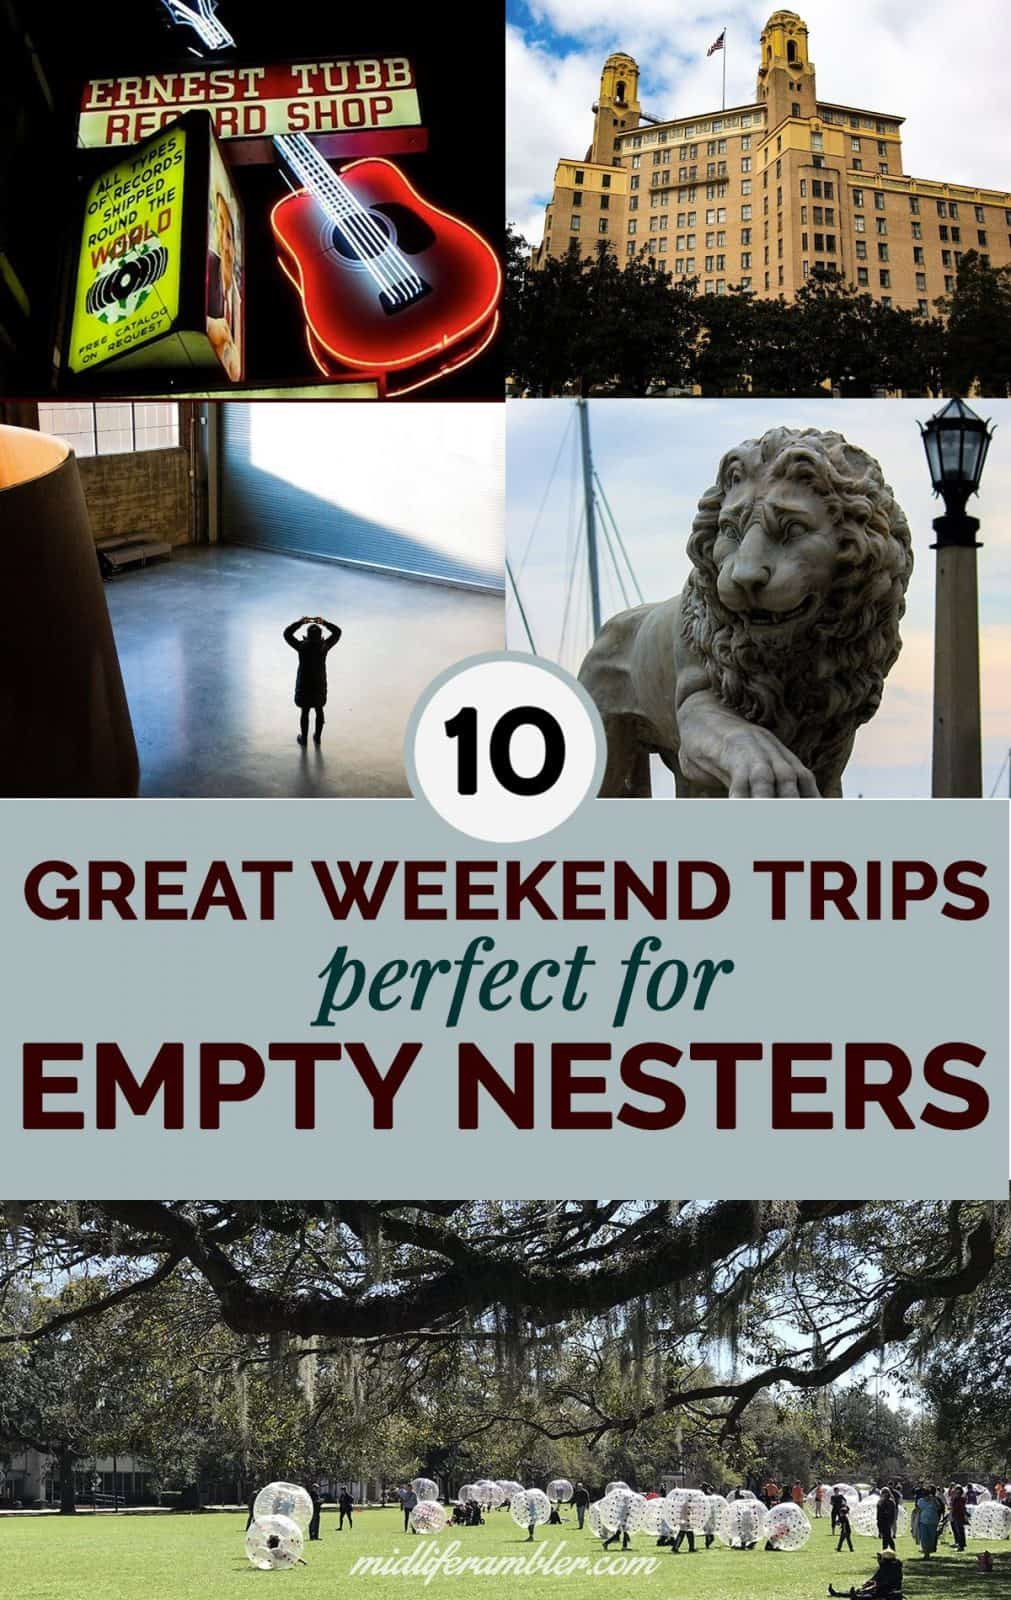 10 Best Weekend Getaways for Empty Nesters in the United States 22